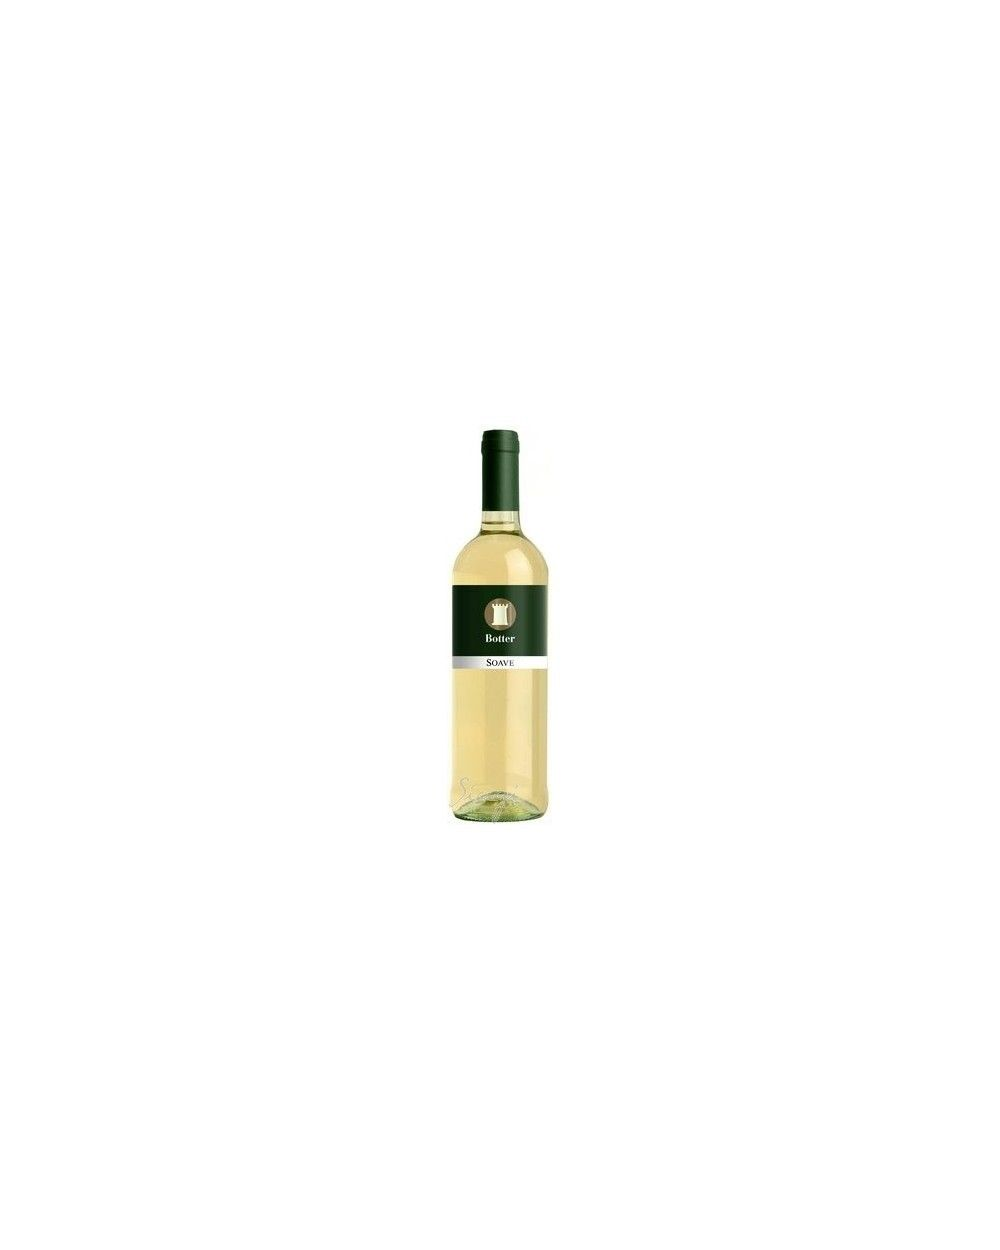 Soave 2010 75cl